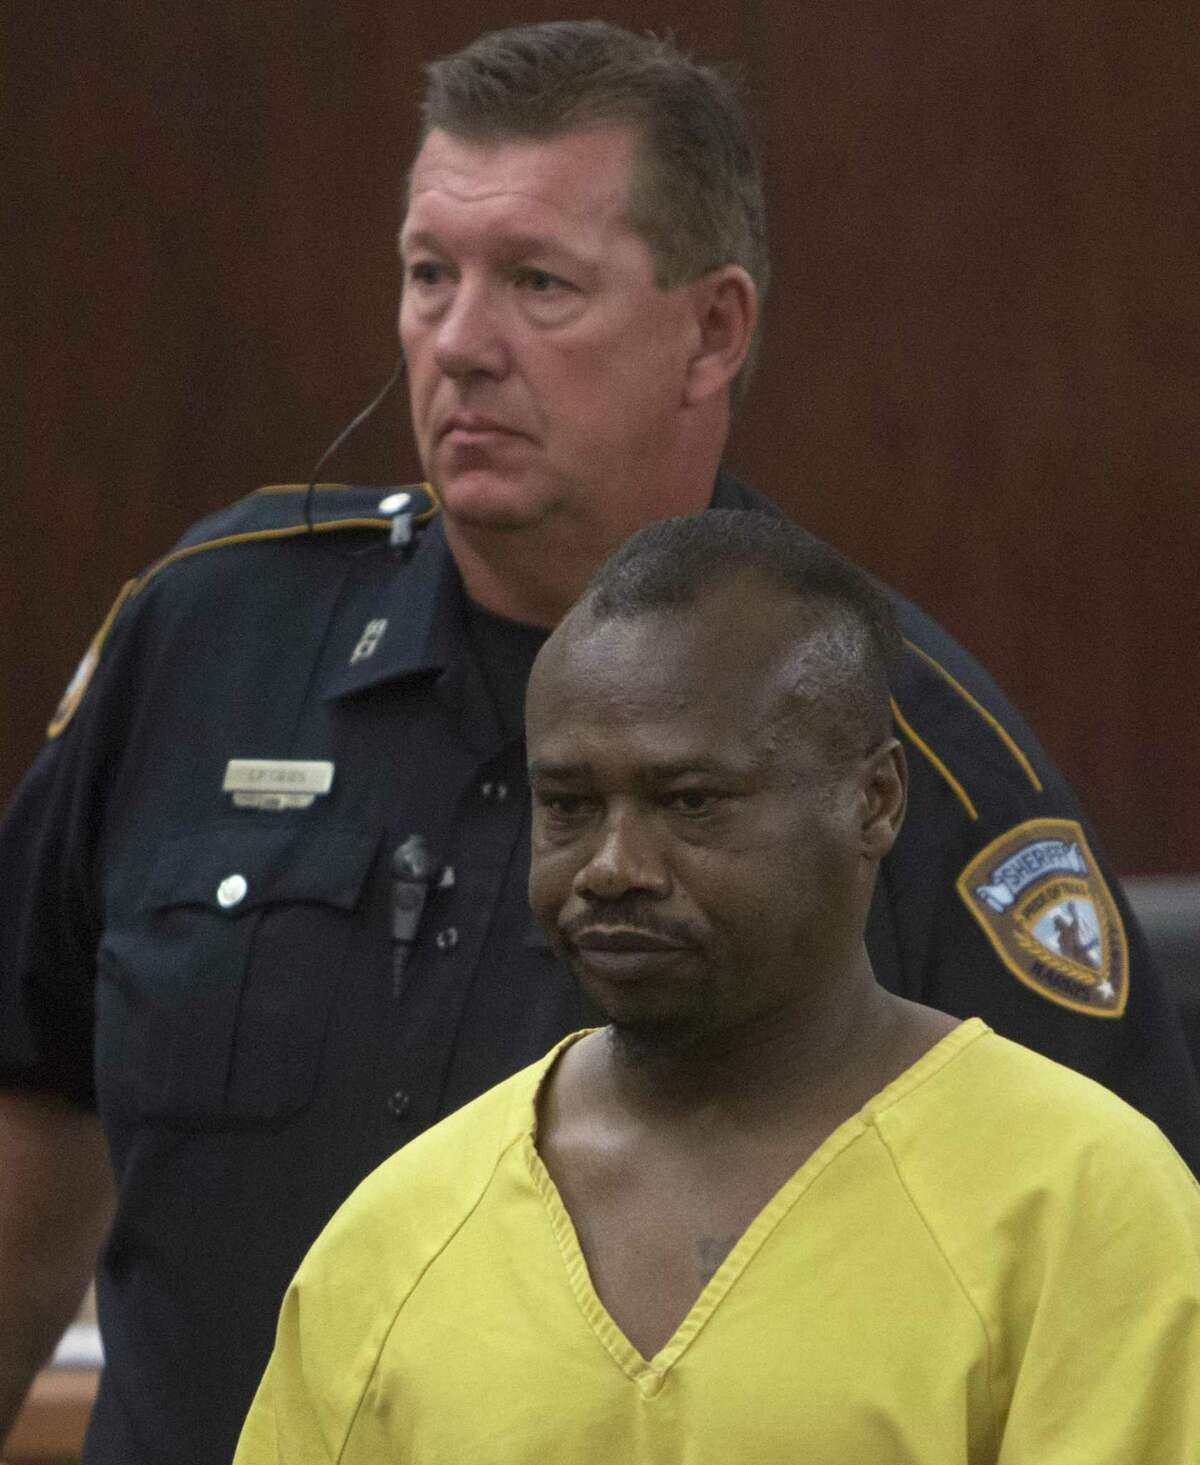 David Ray Conley appears in the 183rd State District Court, on Aug. 10, 2015, in Houston. Authorities said Conley had broken in through a window of a home, armed and with handcuffs, and methodically shot his ex-girlfriend Valerie Jackson, her husband and six children, including his own son. All eight died in the house.